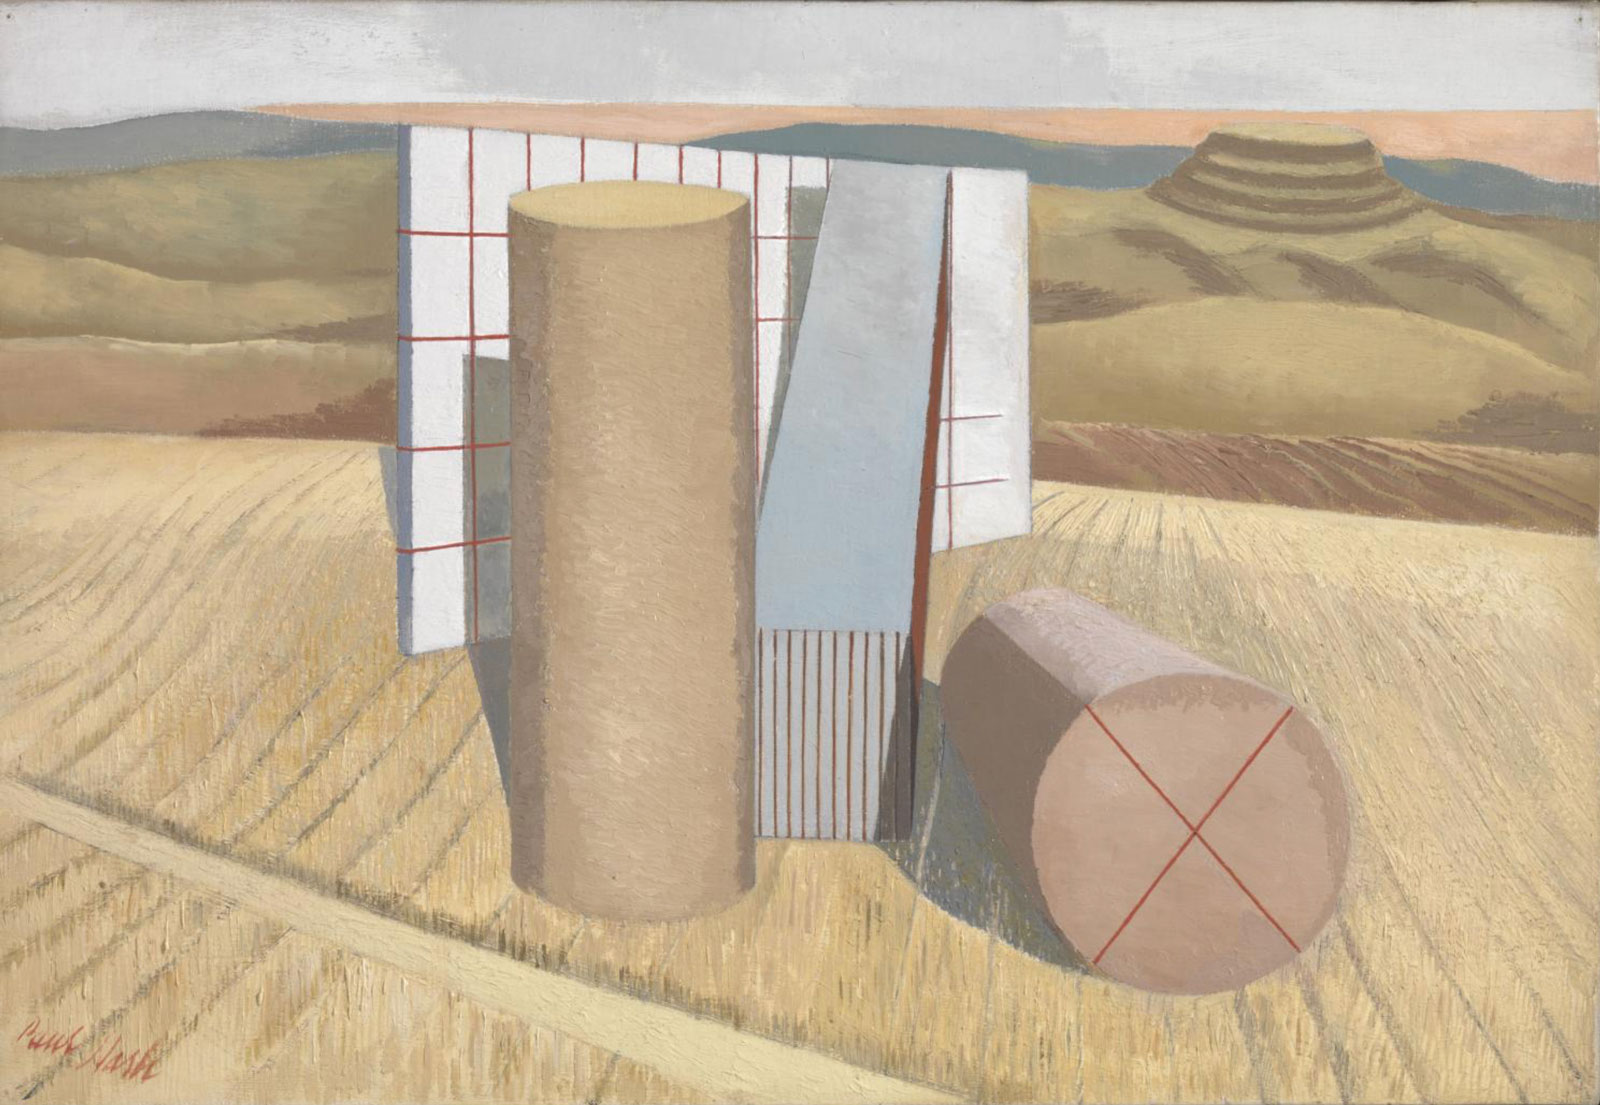 Paul Nash: Equivalents for the Megaliths, 1935